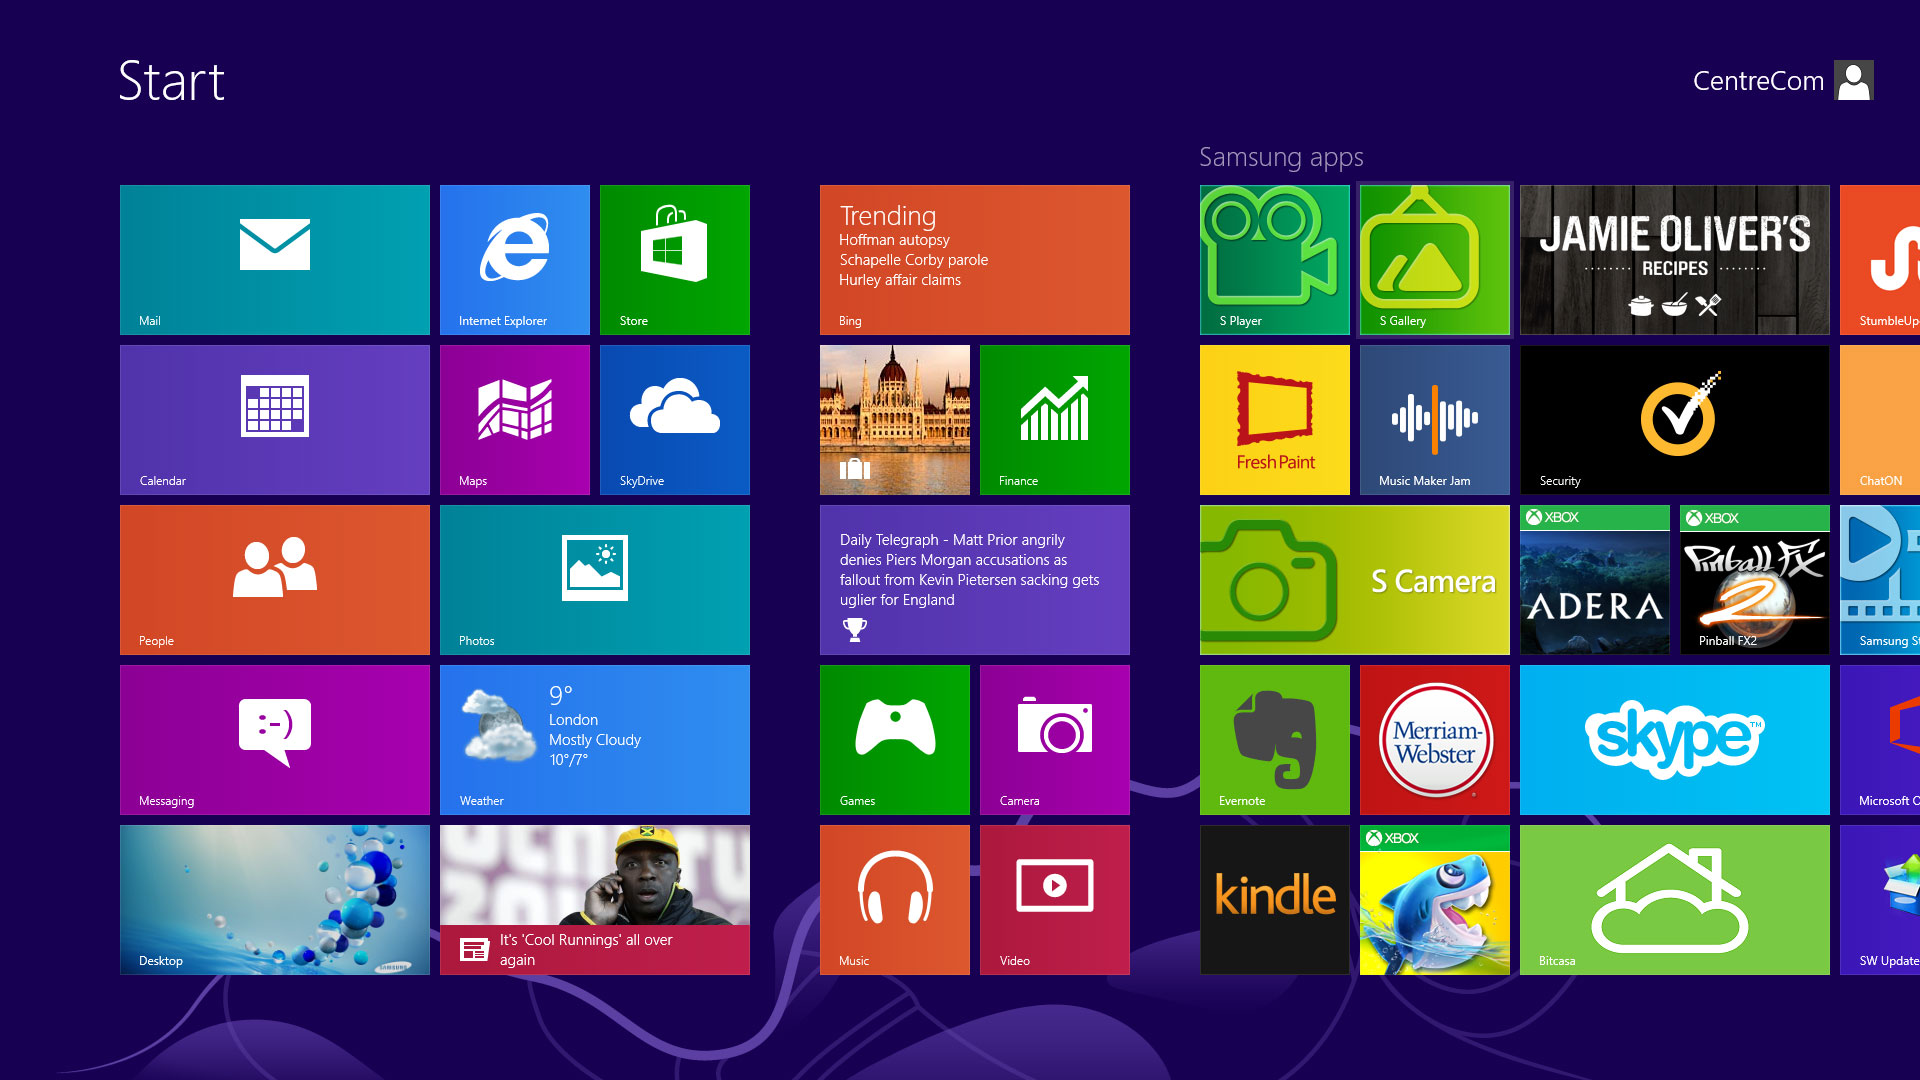 Upgrade to Windows 8.1 from Windows 8